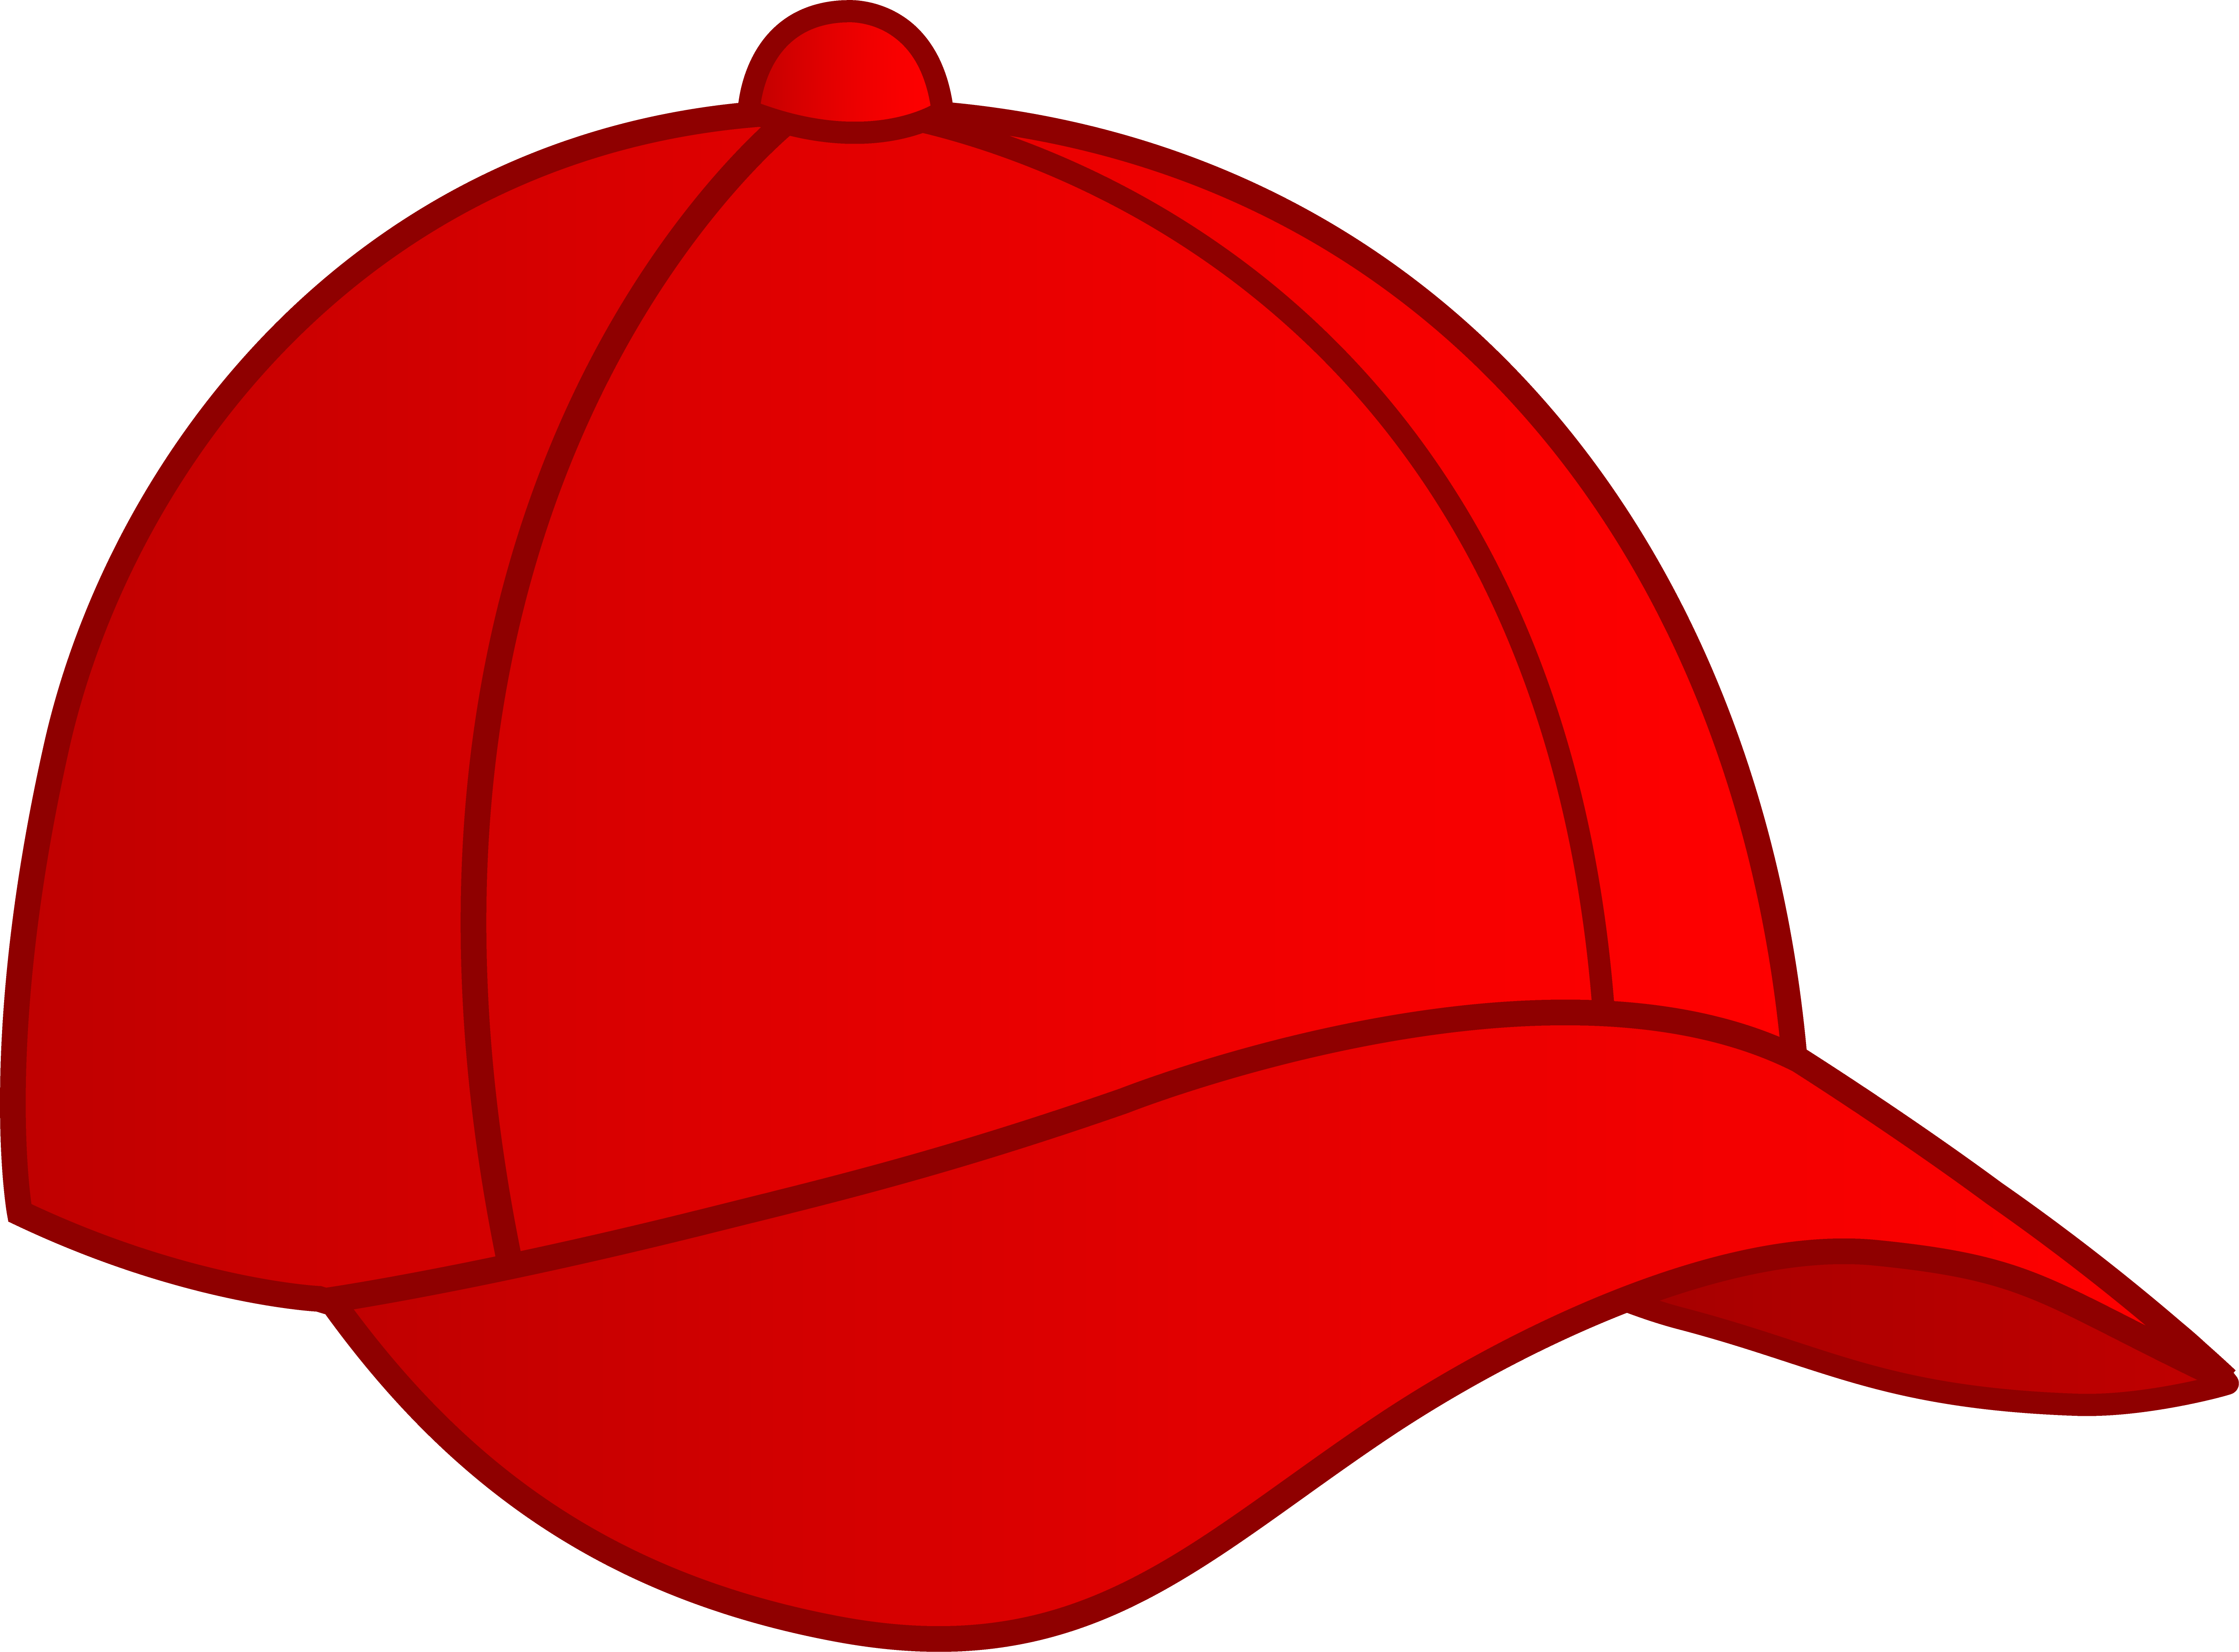 baseball hat clipart at getdrawings com free for personal use rh getdrawings com clipart party hats clip art hats and gloves